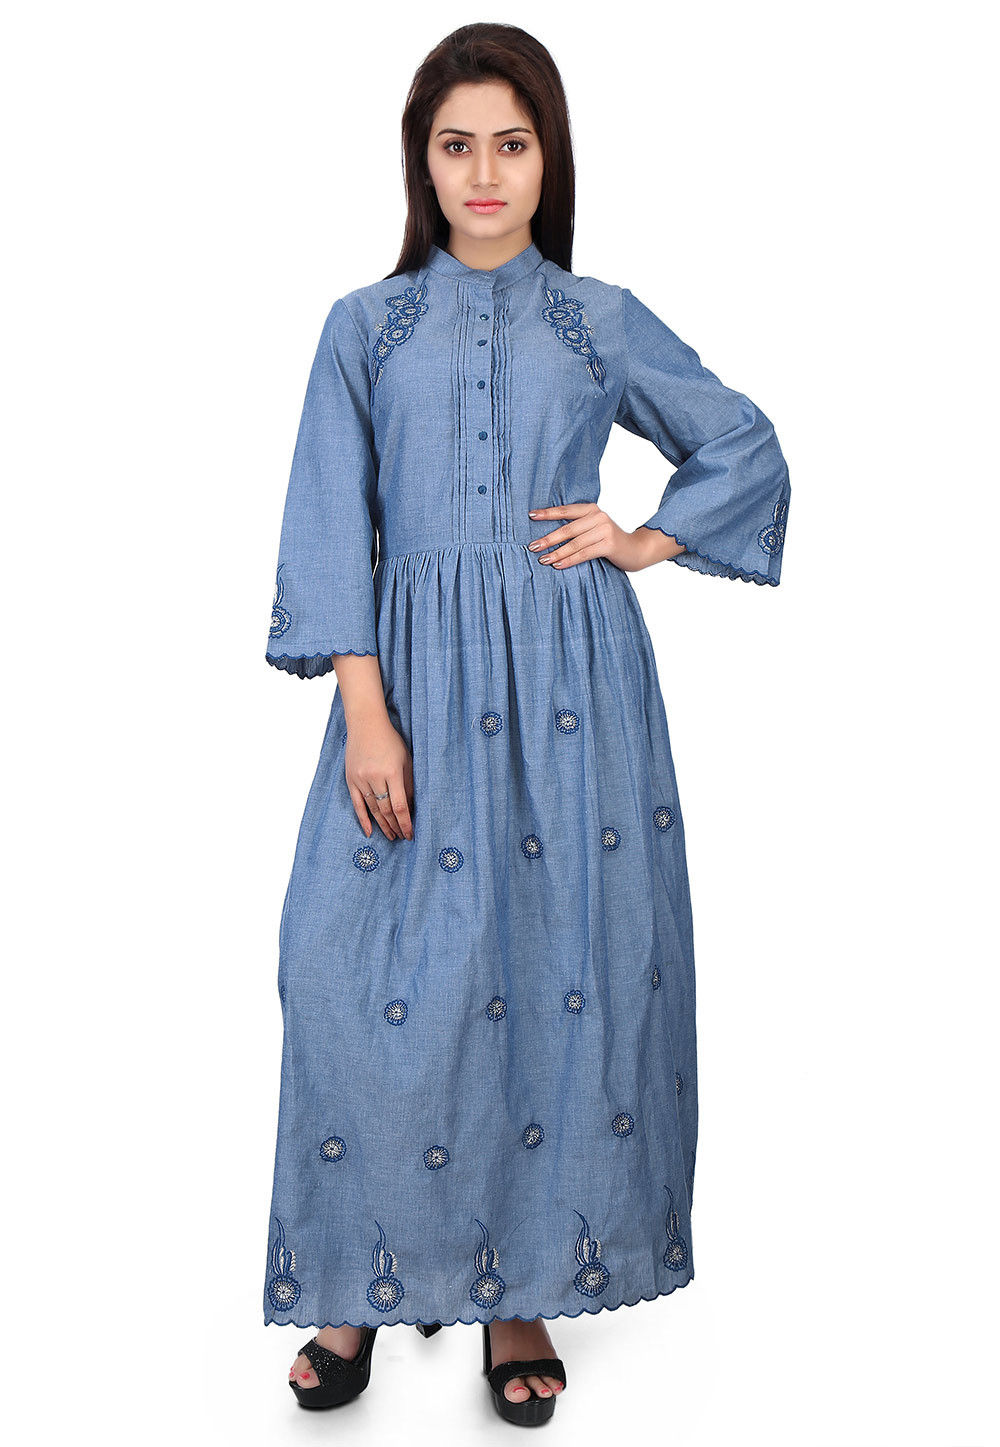 Embroidered Chambray Dress in Blue